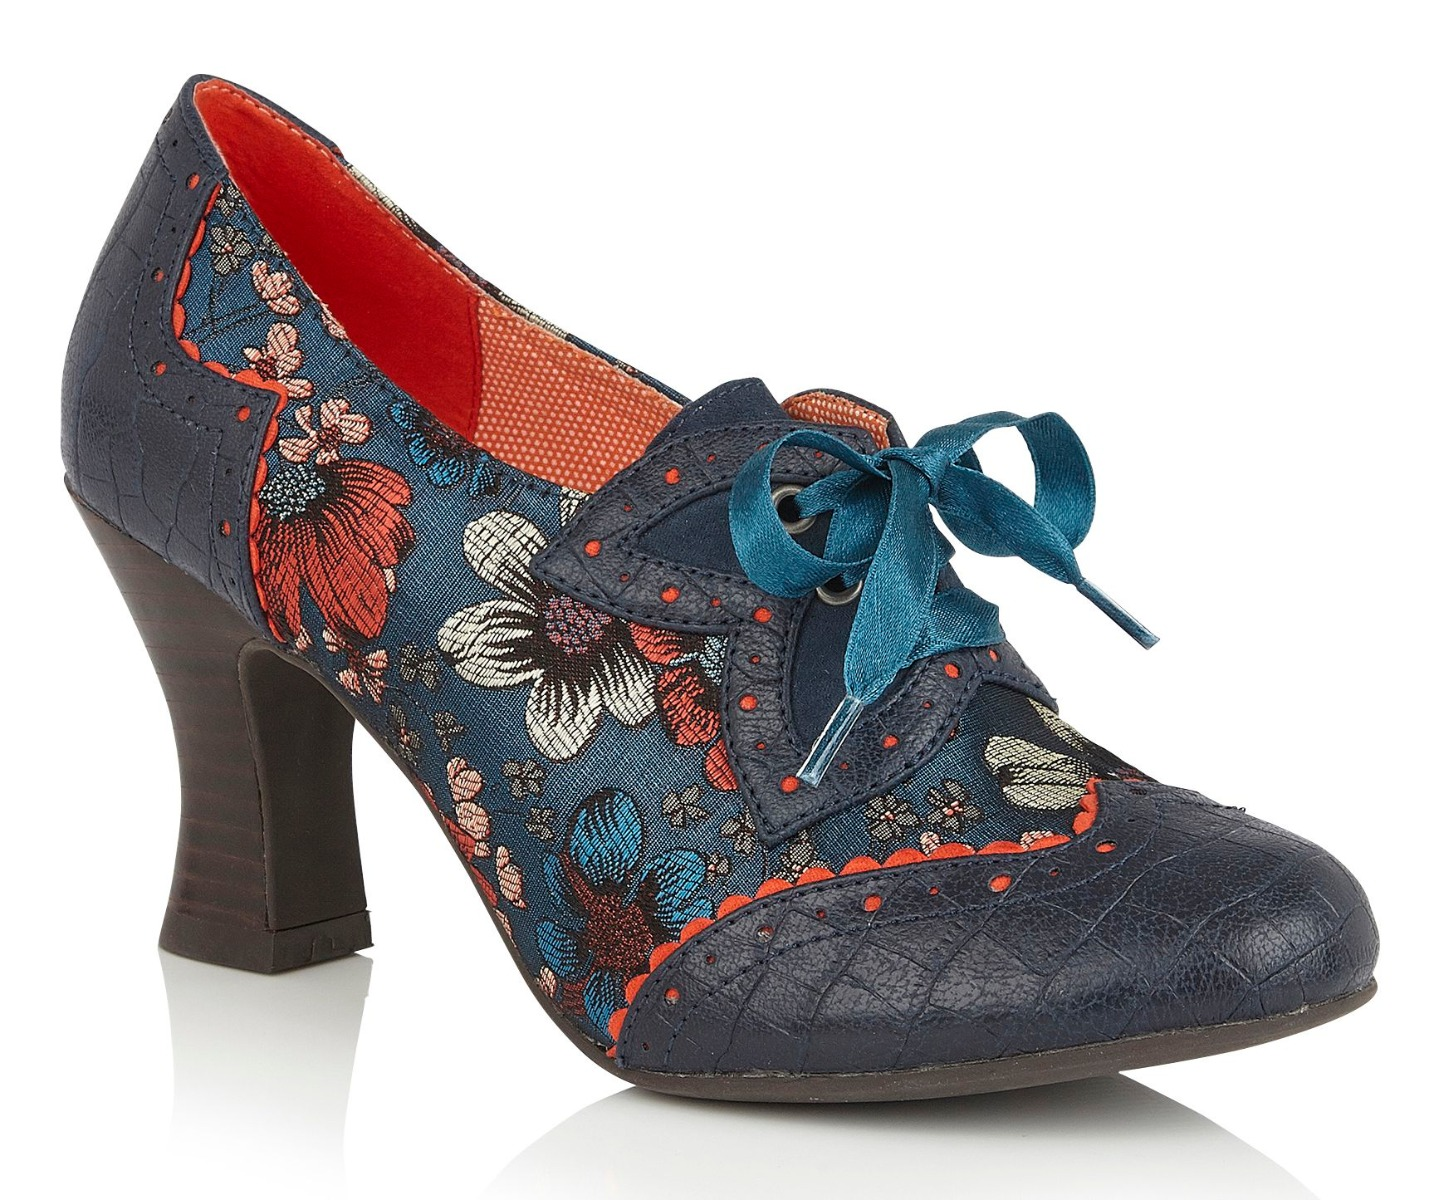 rs09307_chaussures-derby-pin-up-retro-50-s-glam-chic-daisy-bleu